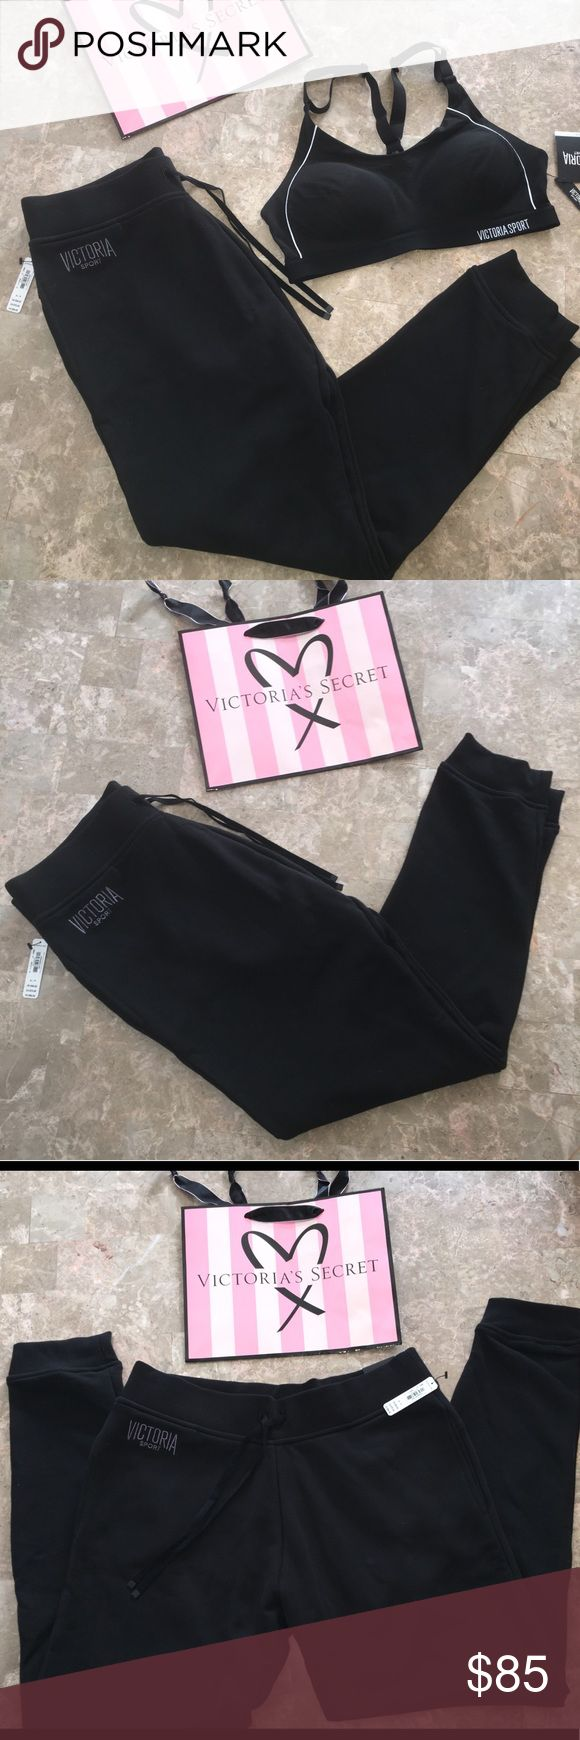 NWT Victoria's Secret Sport bundle (2) NWT Victoria's Secret Sport items: includes 1 sport bra. Size 36 B sister size 34C. Can fit medium top. Adjustable straps. Body wick technology designed to keep you cool and dry when working out while looking your best! 💪🏼💁🏻♀️. Also includes 1 pair of VS sport pants. Cotton polyester mix. Size small. Full length pegged at bottom. Both black Victoria's Secret Intimates & Sleepwear Bras